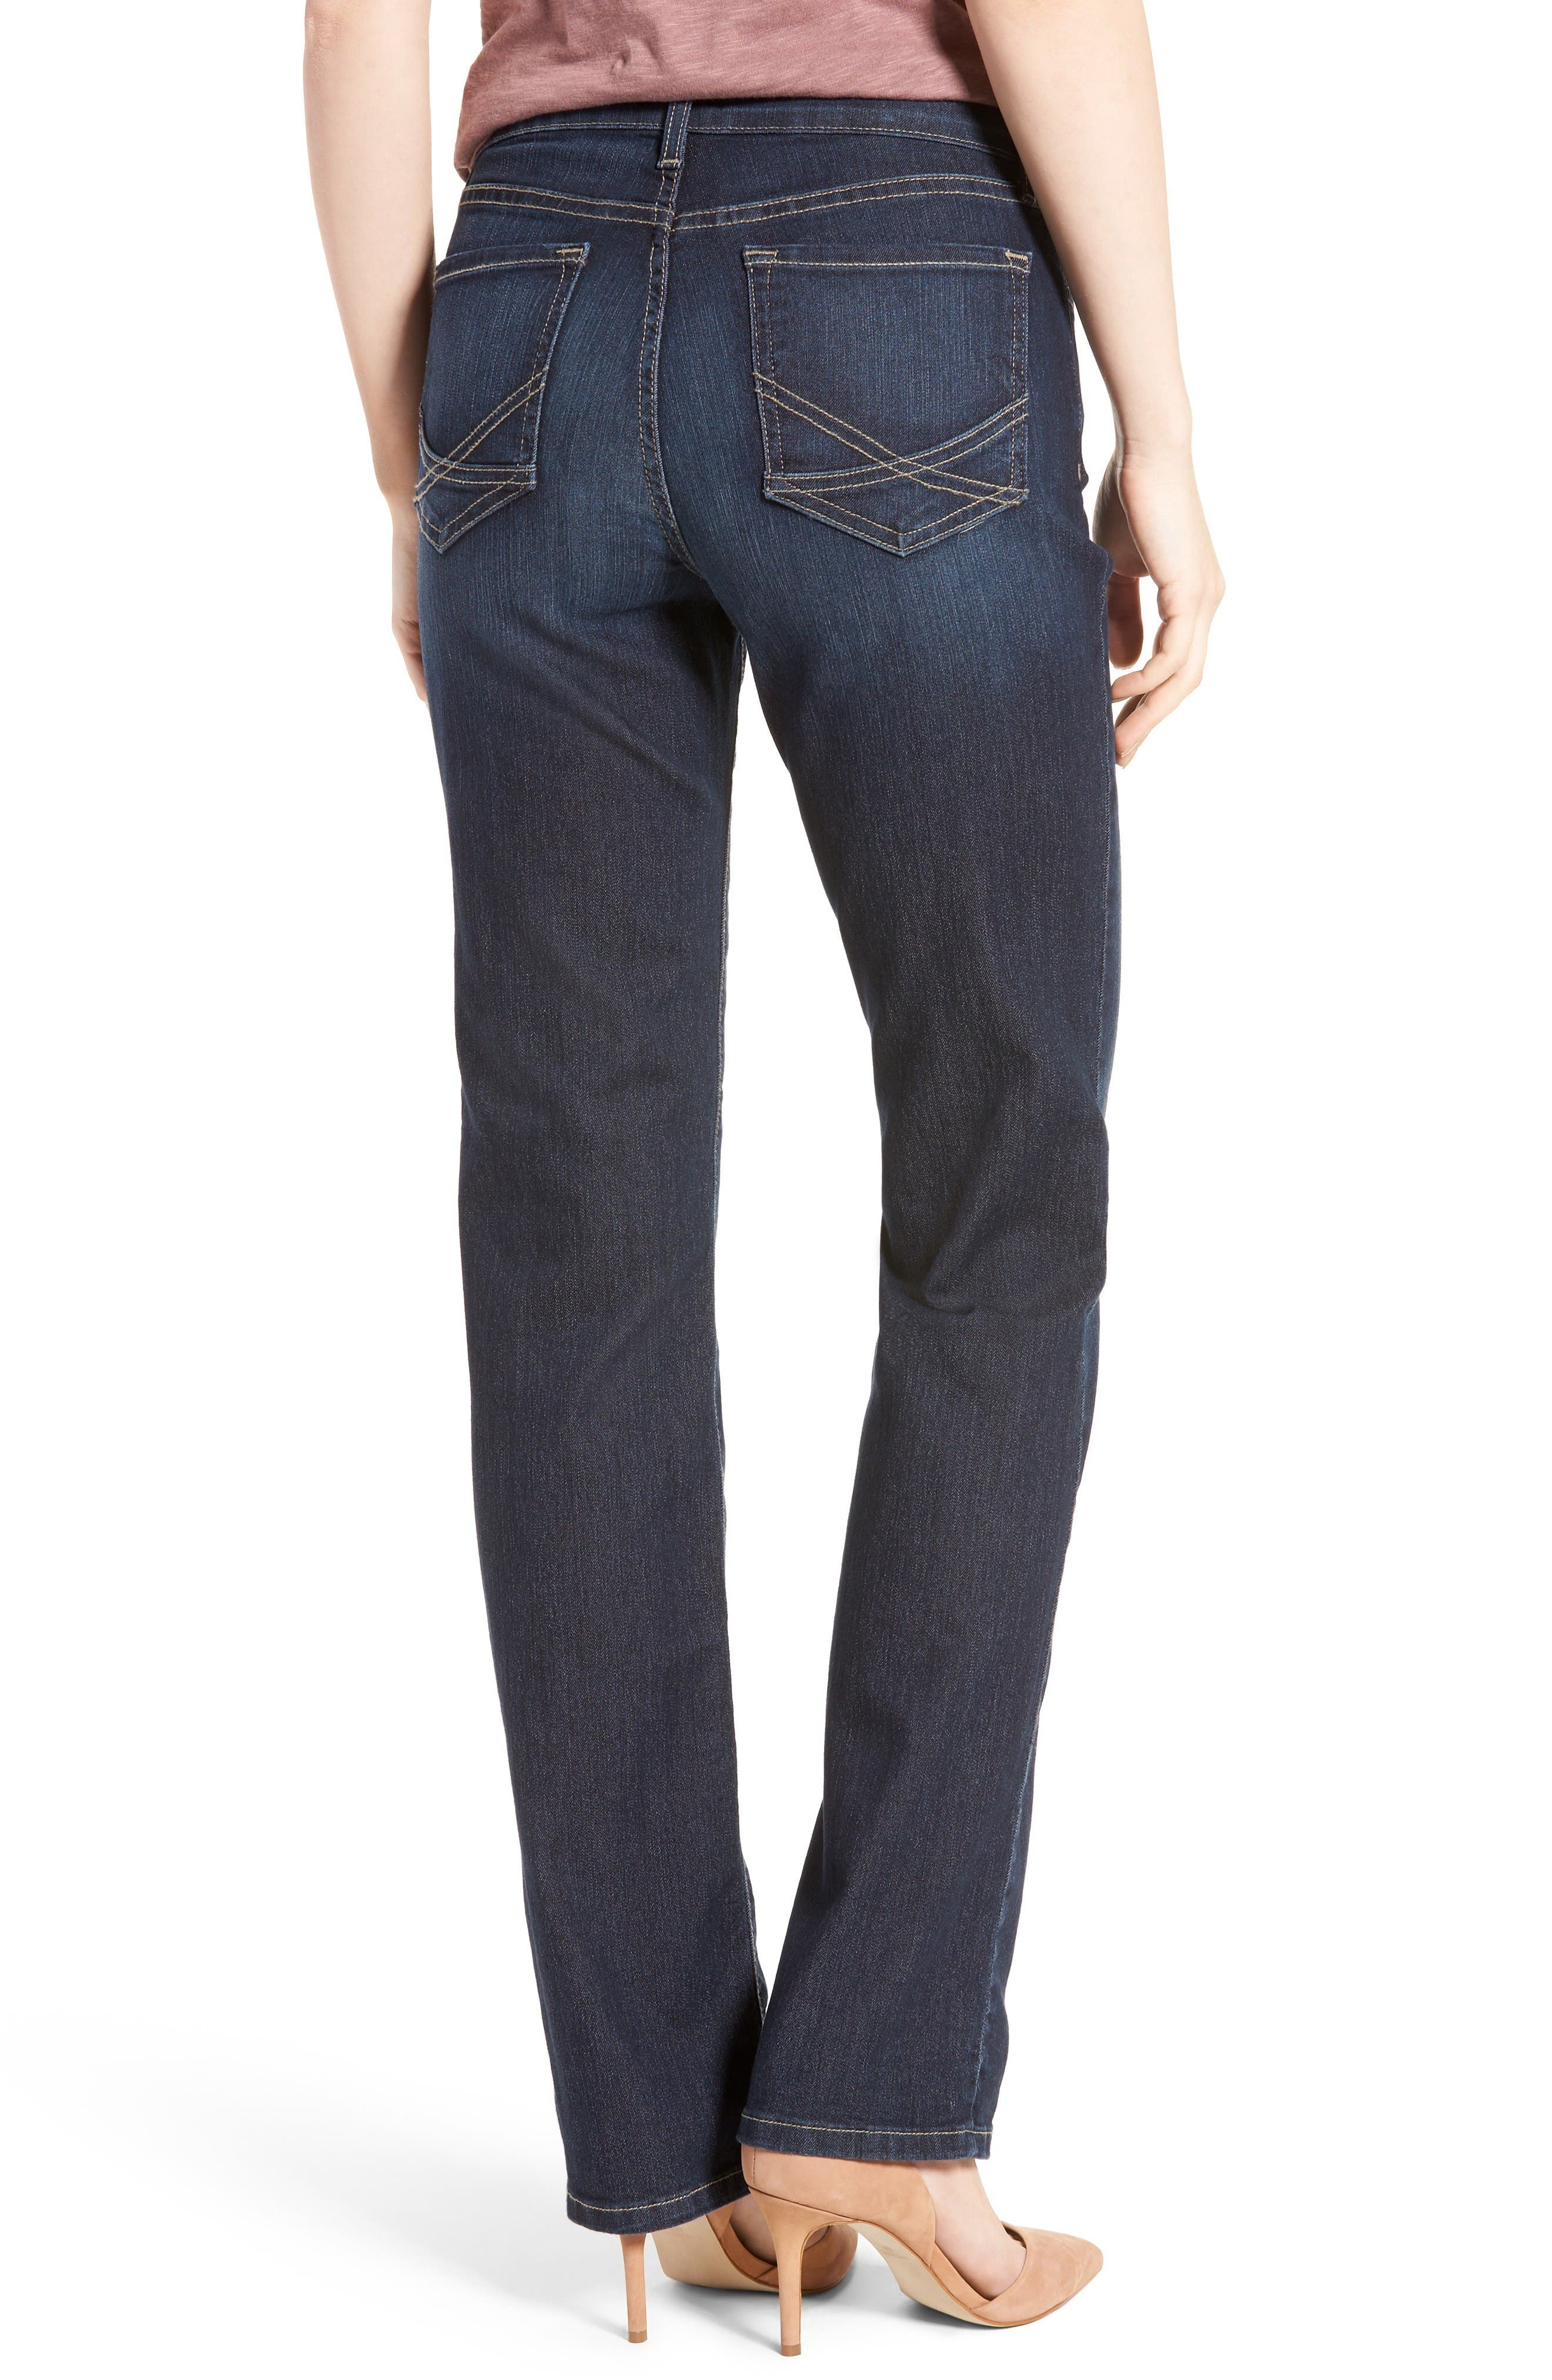 Marilyn Stretch Straight Leg Jeans,                             Alternate thumbnail 2, color,                             Hollywood Wash